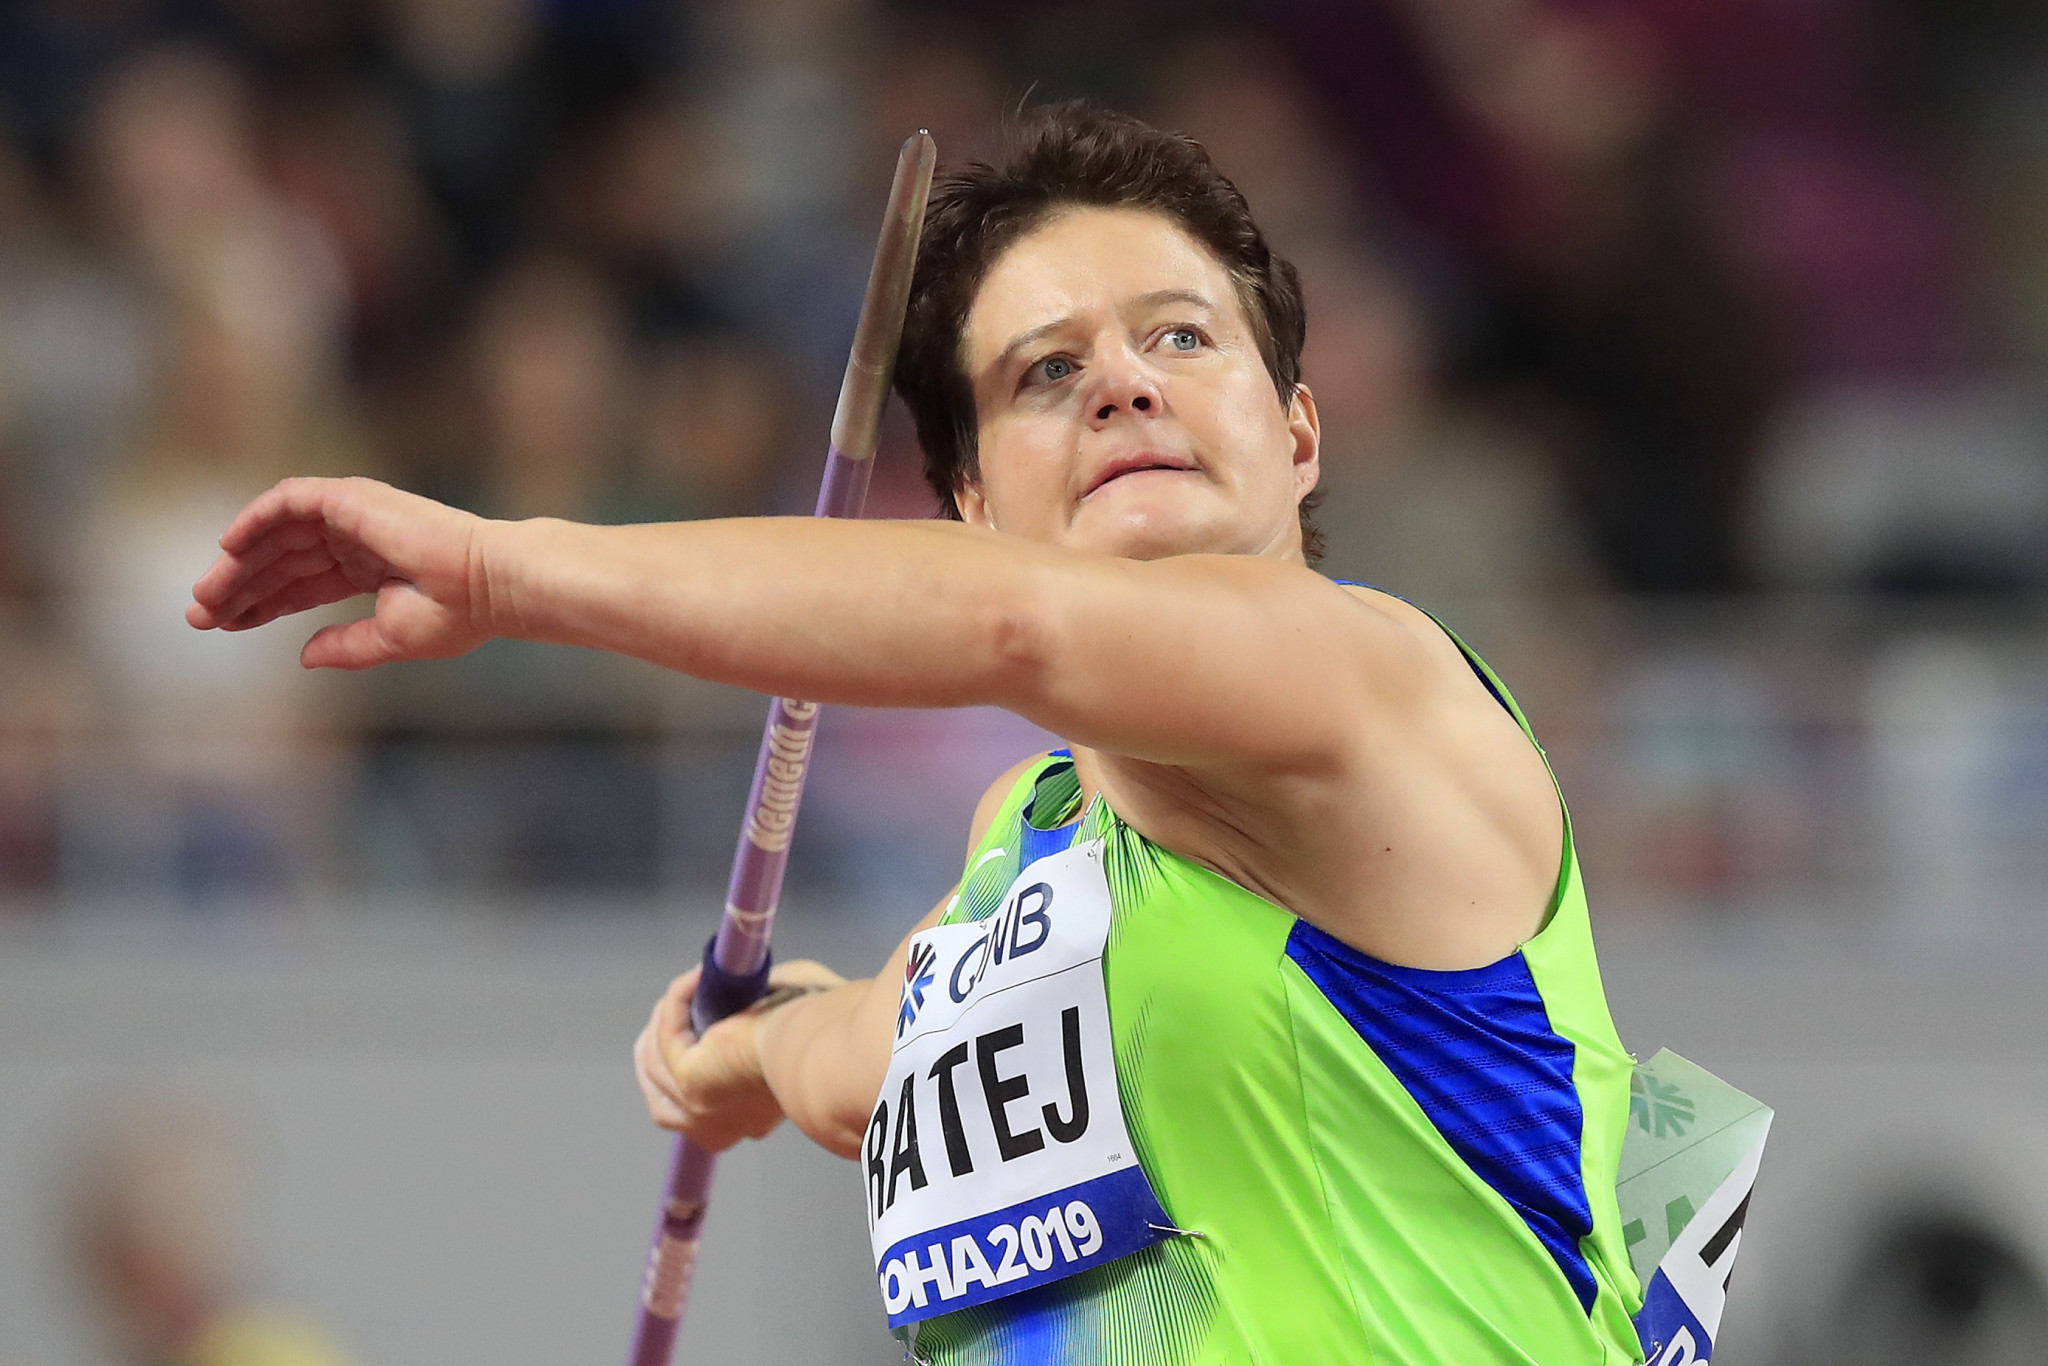 Slovenian javelin thrower Martina Ratej has been provisionally suspended by the AIU ©Getty Images